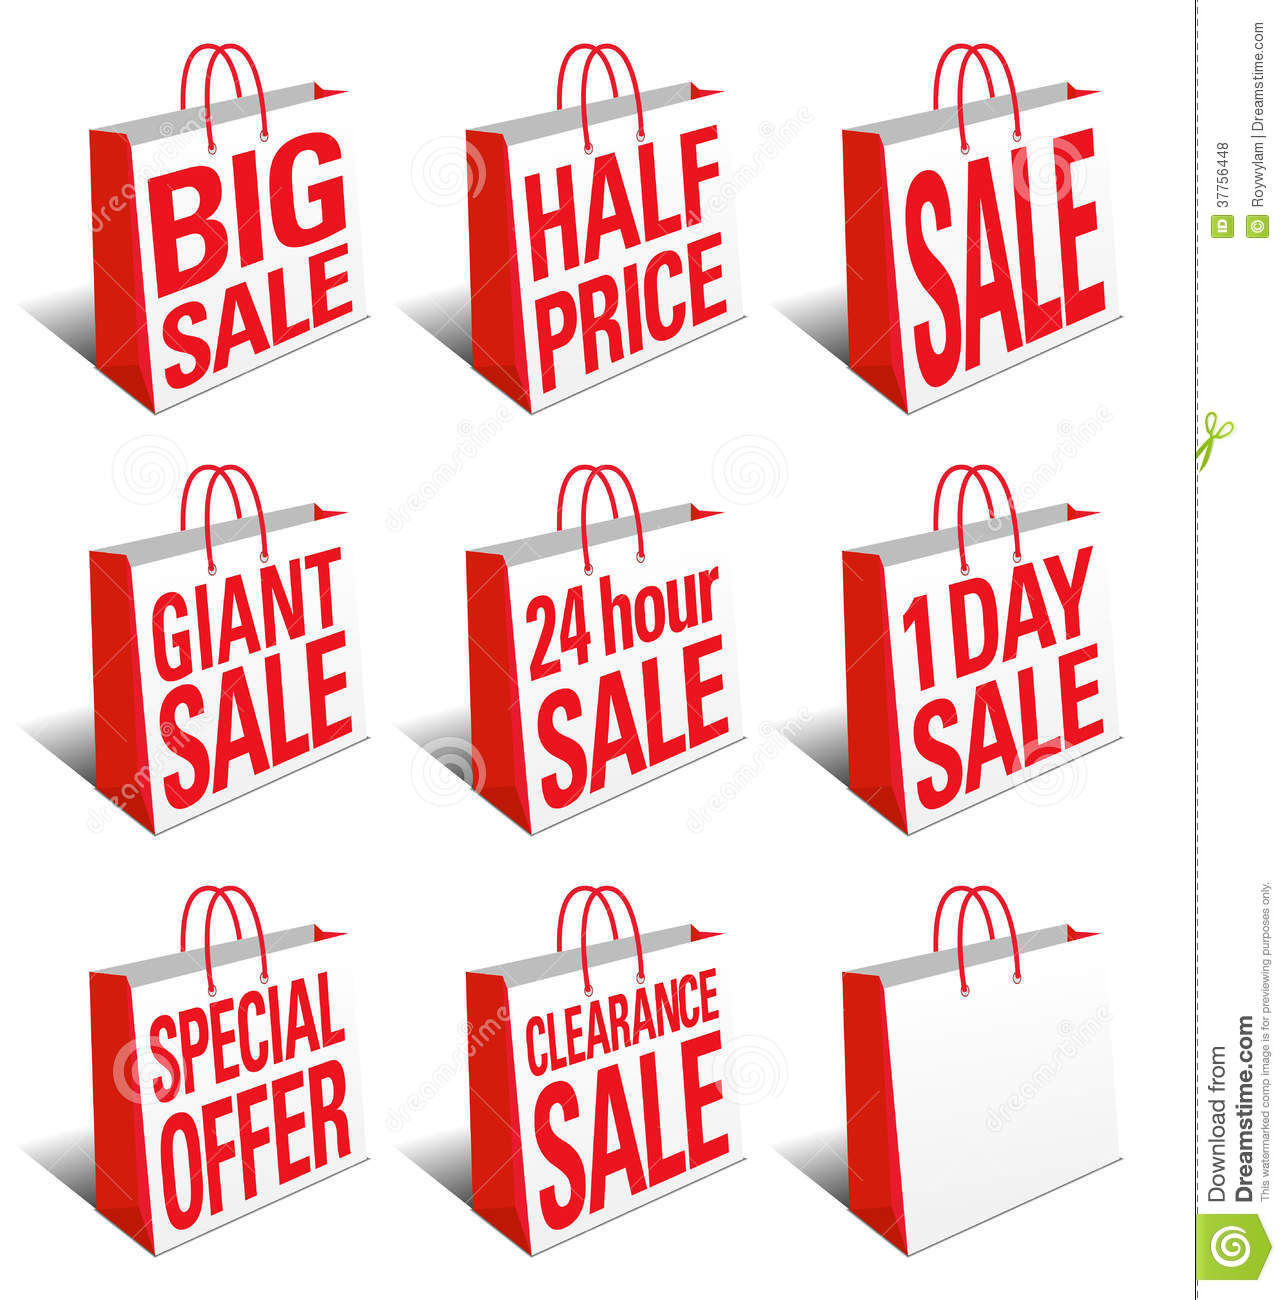 Shopping Bags Sale Symbol Stock Photo - Image: 18671930